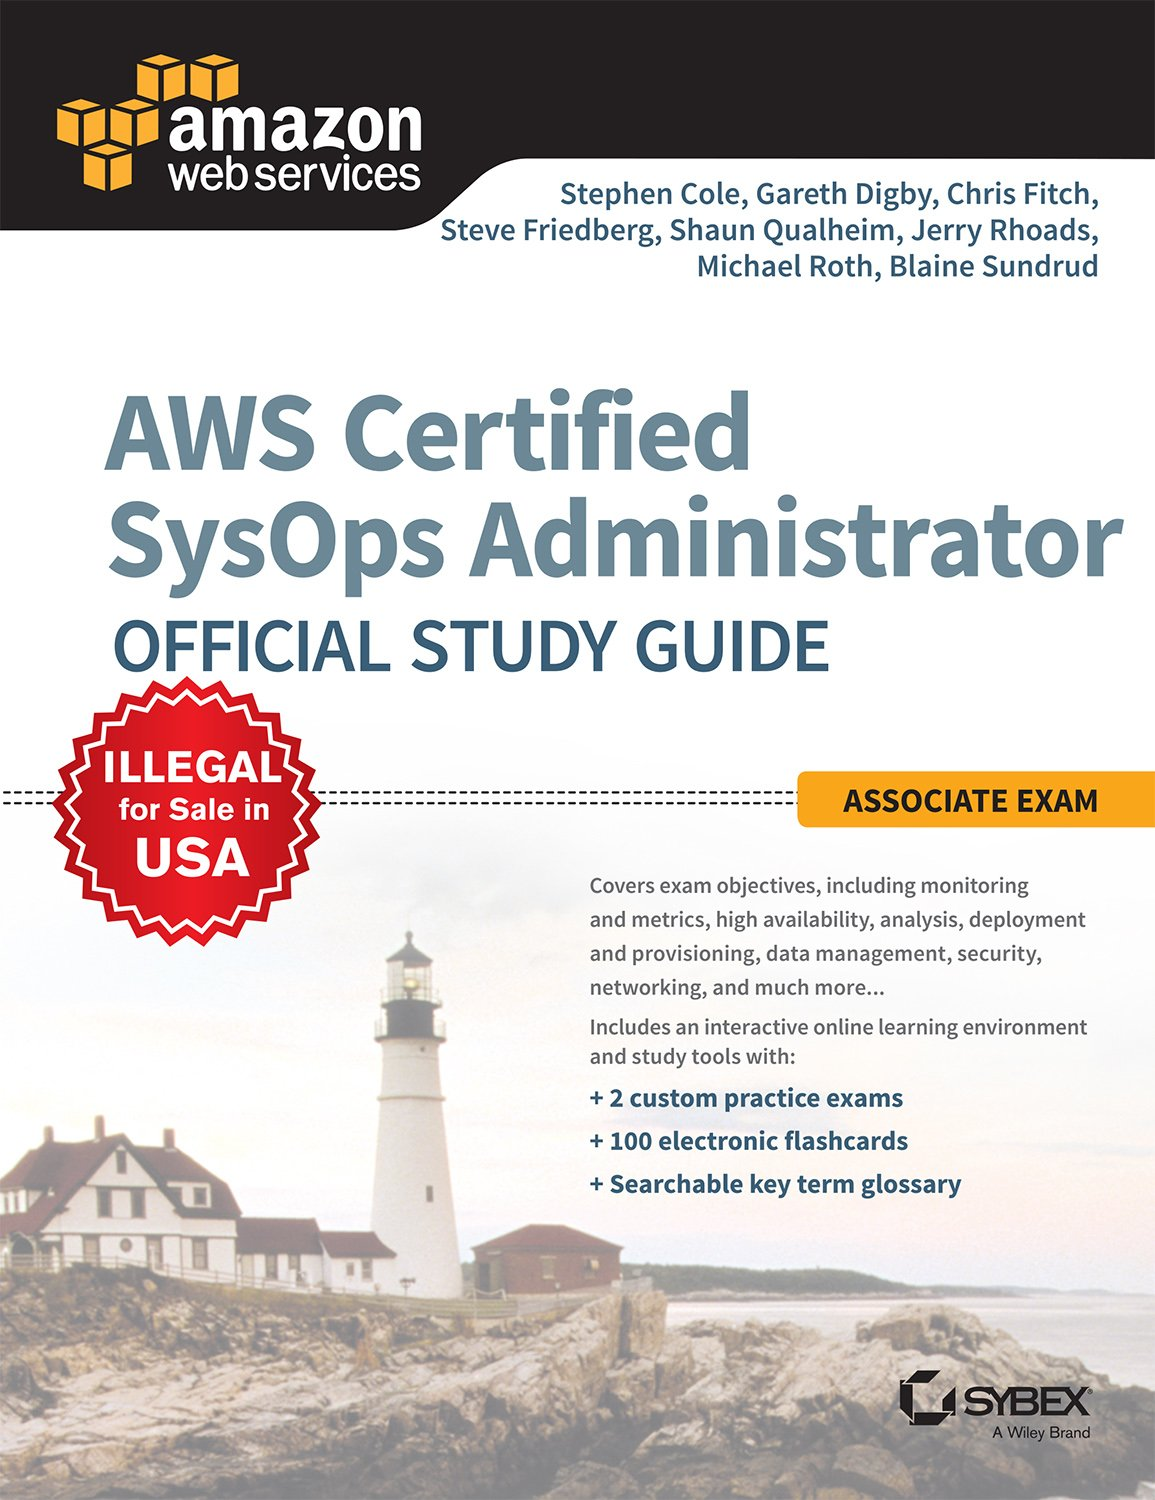 Aws certified sysops administrator official study guide gareth aws certified sysops administrator official study guide gareth digby chris fitch steve friedberg shaun qualheim jerry rhoads stephen cole 1betcityfo Image collections